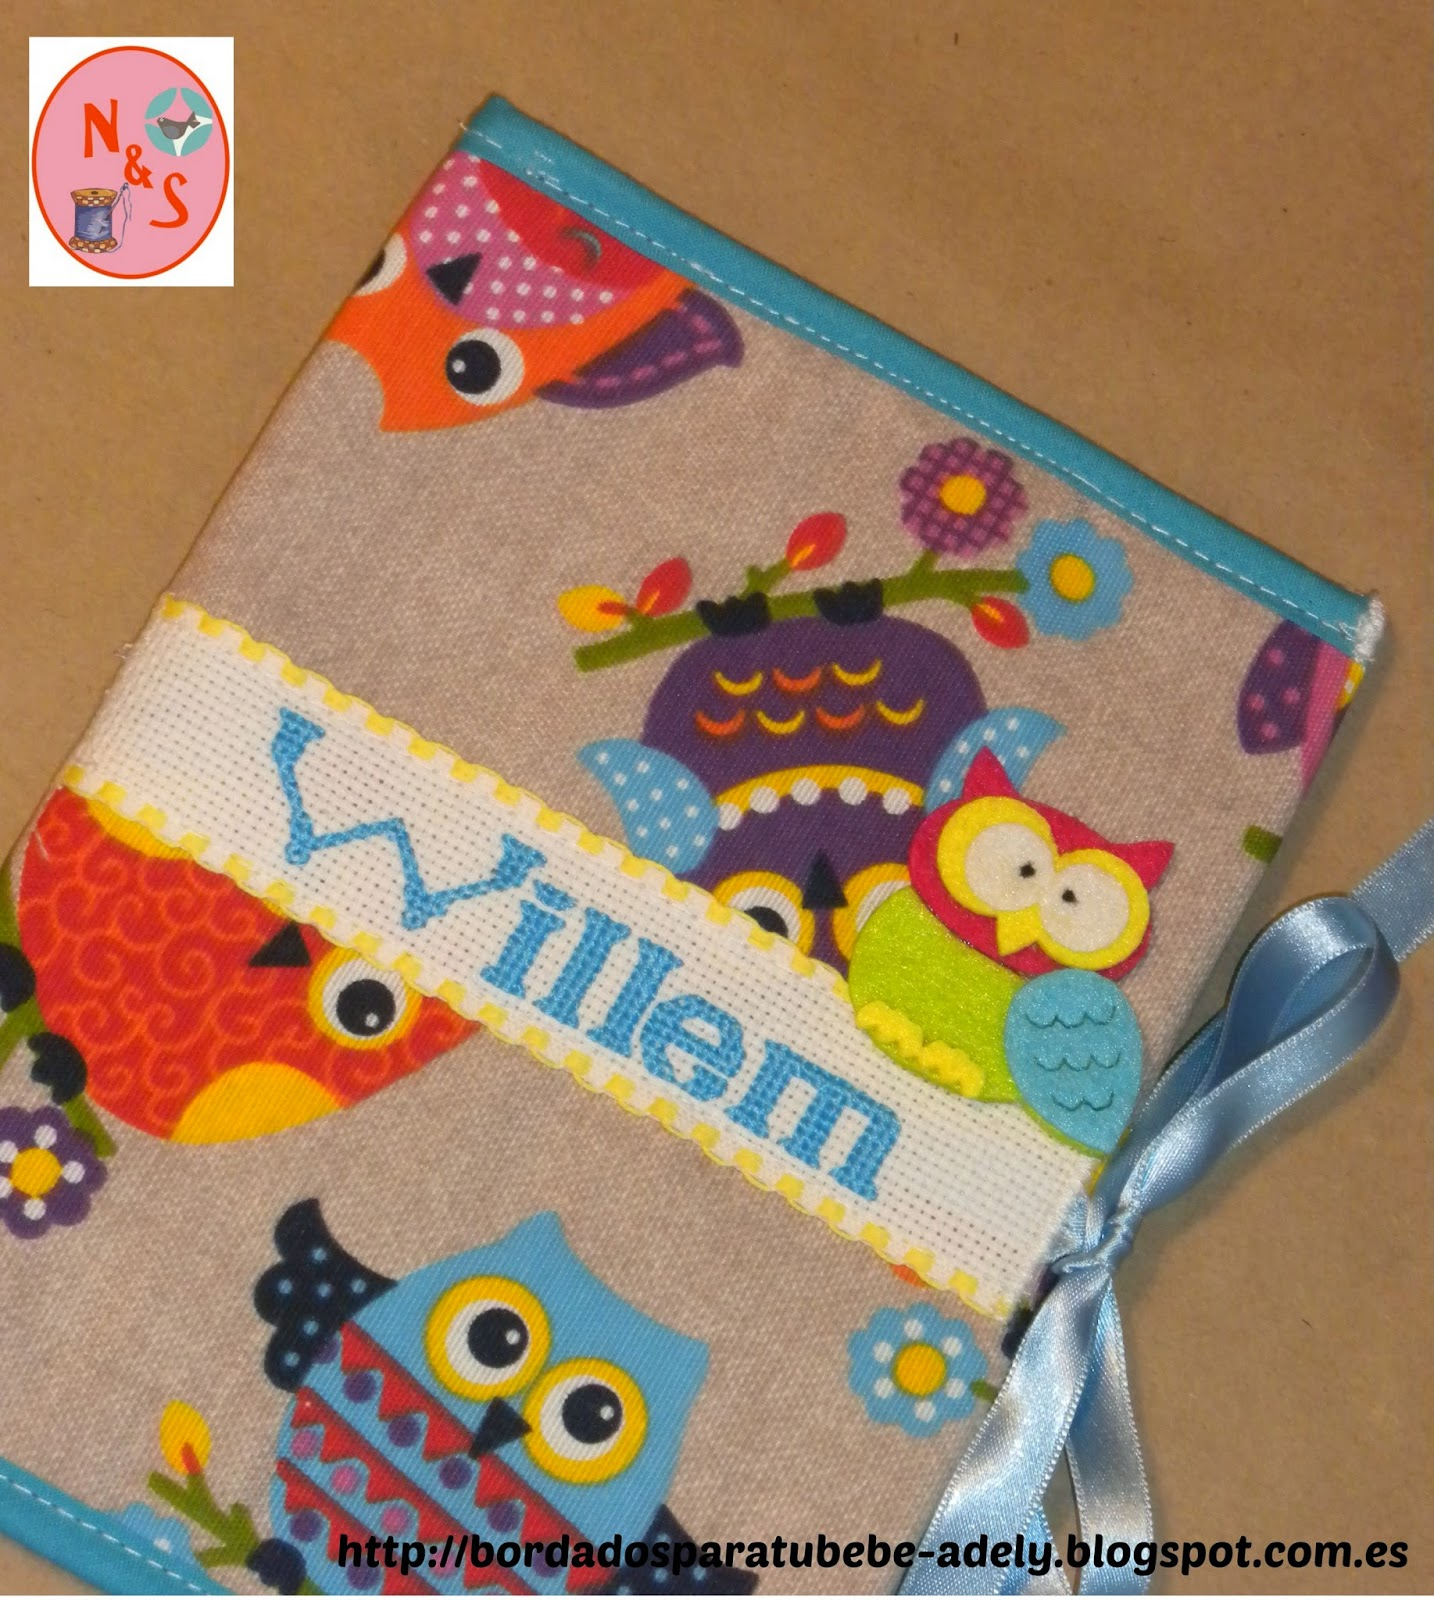 Fundas cartillas sanitarias y documentos infantiles. Regalo original personalizado infantil.